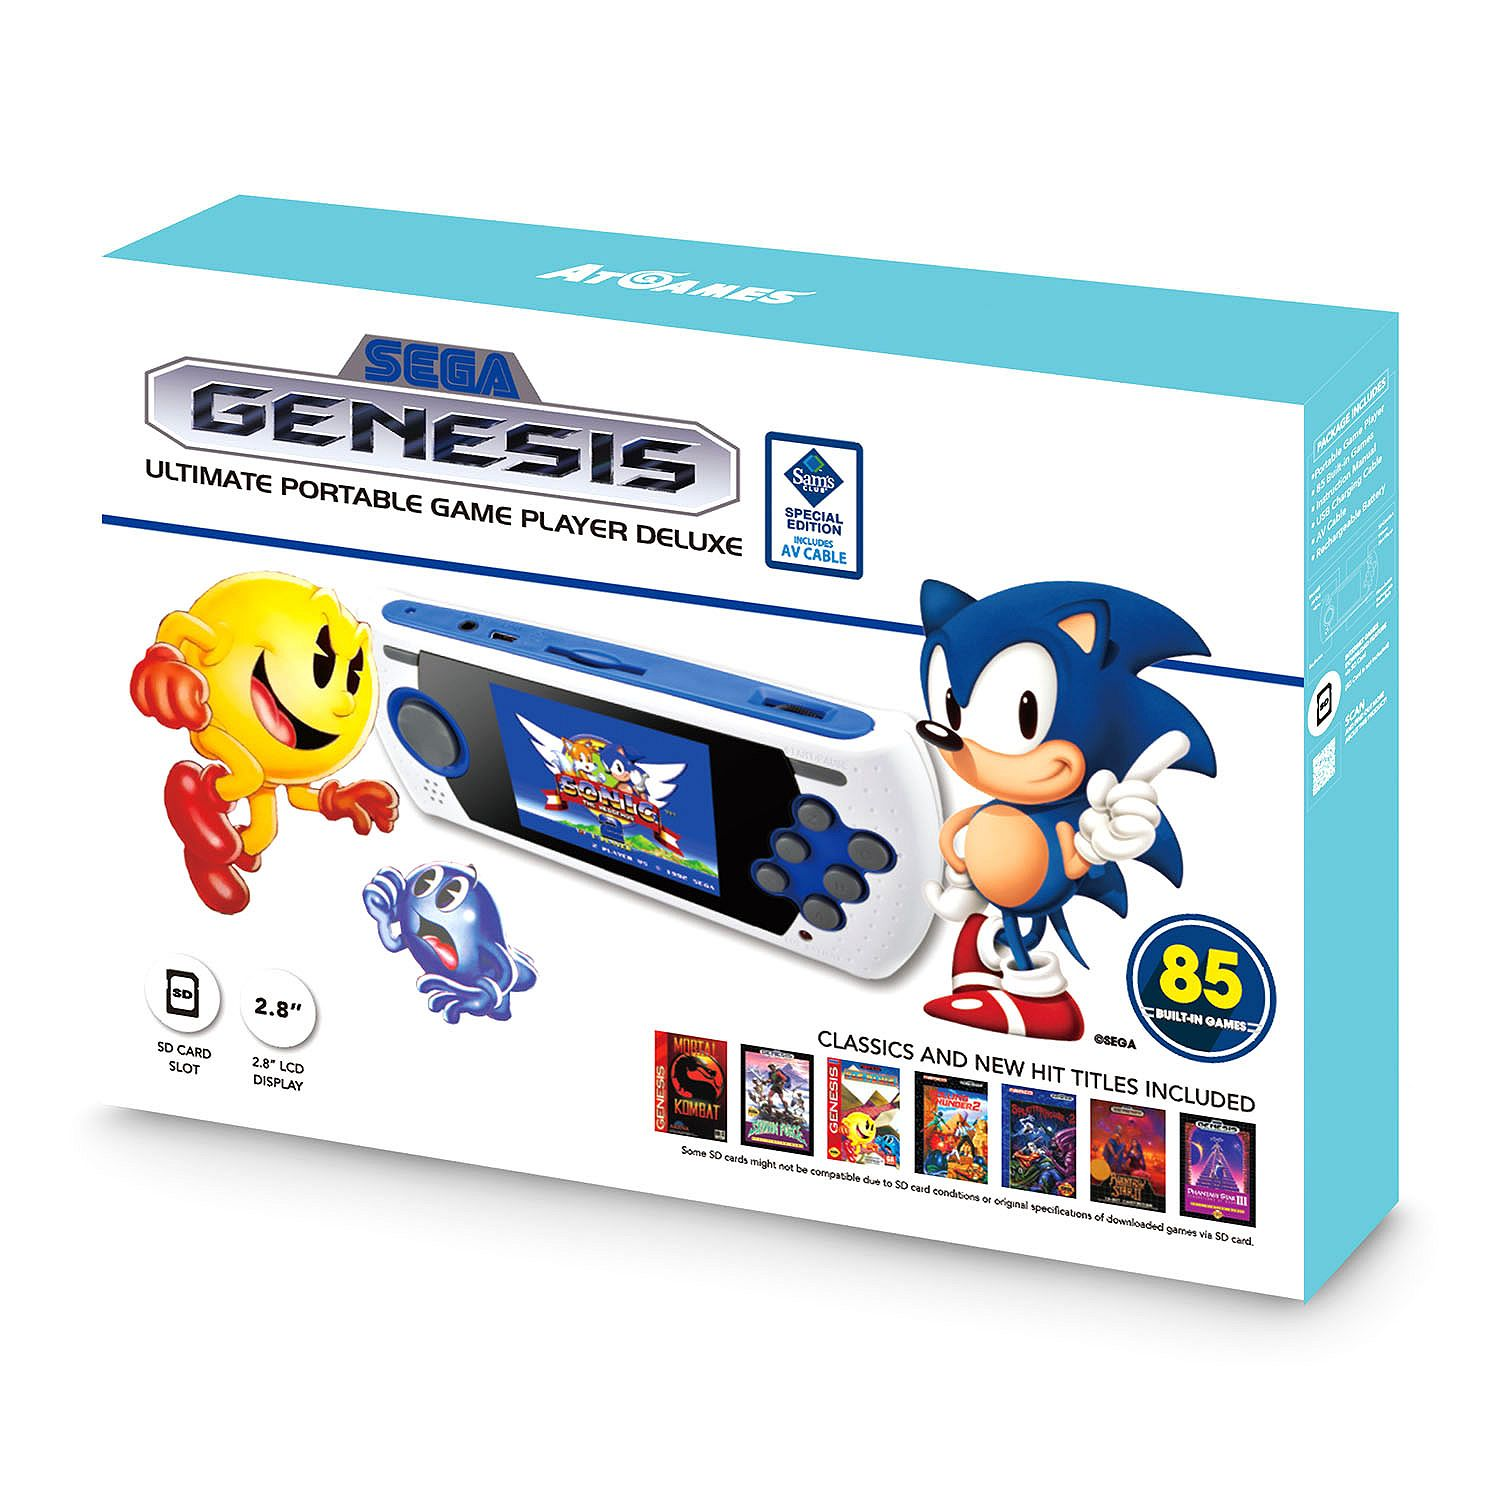 SEGA Genesis Ultimate Portable Game Player Deluxe - Bonus AV Cable - Exclusive Set - New 2017!